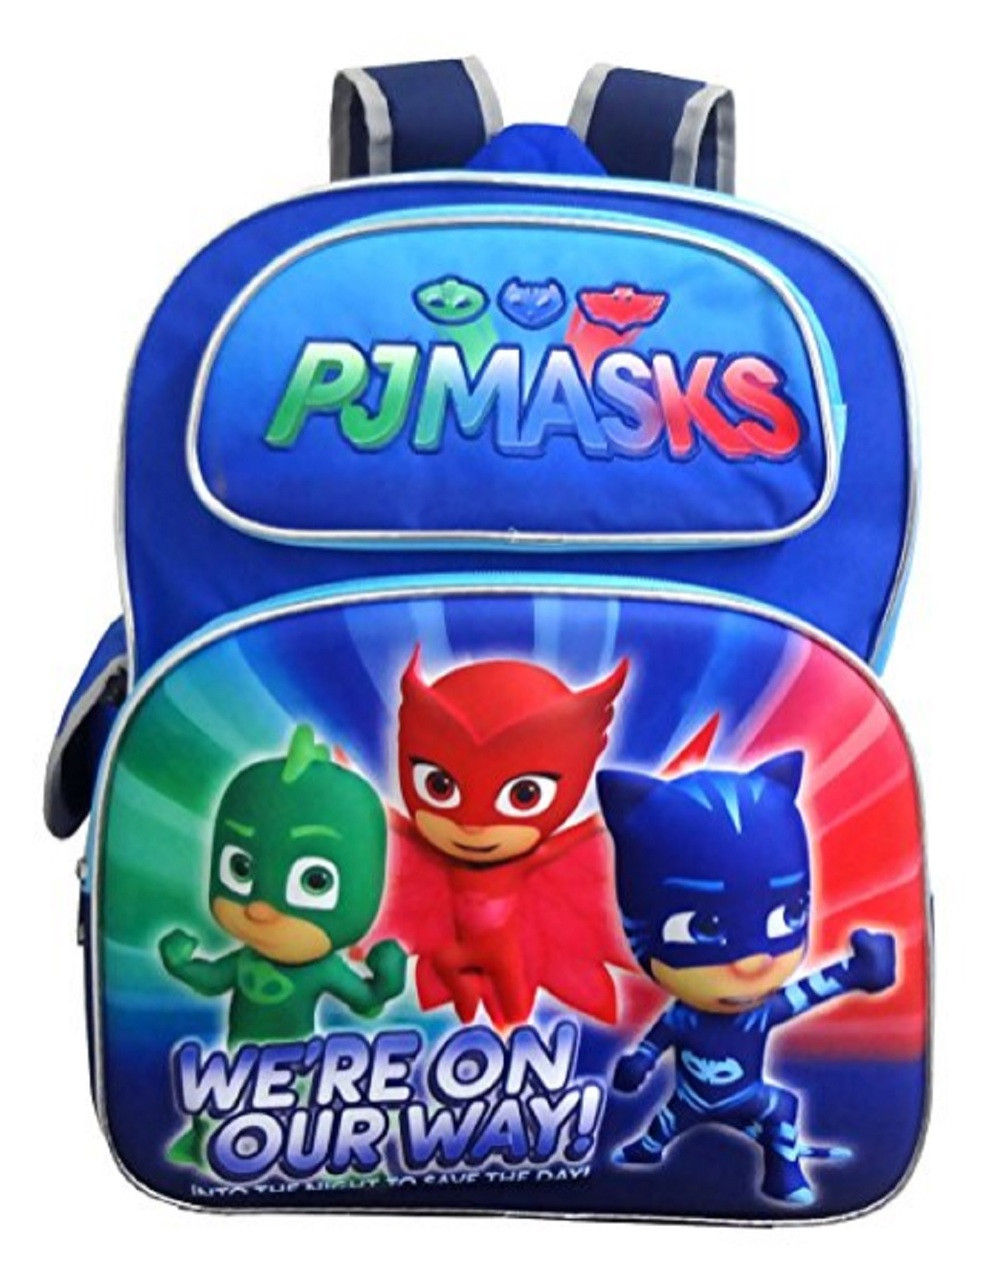 PJ Masks - Backpack - Large 16 Inch - Boys - 3D